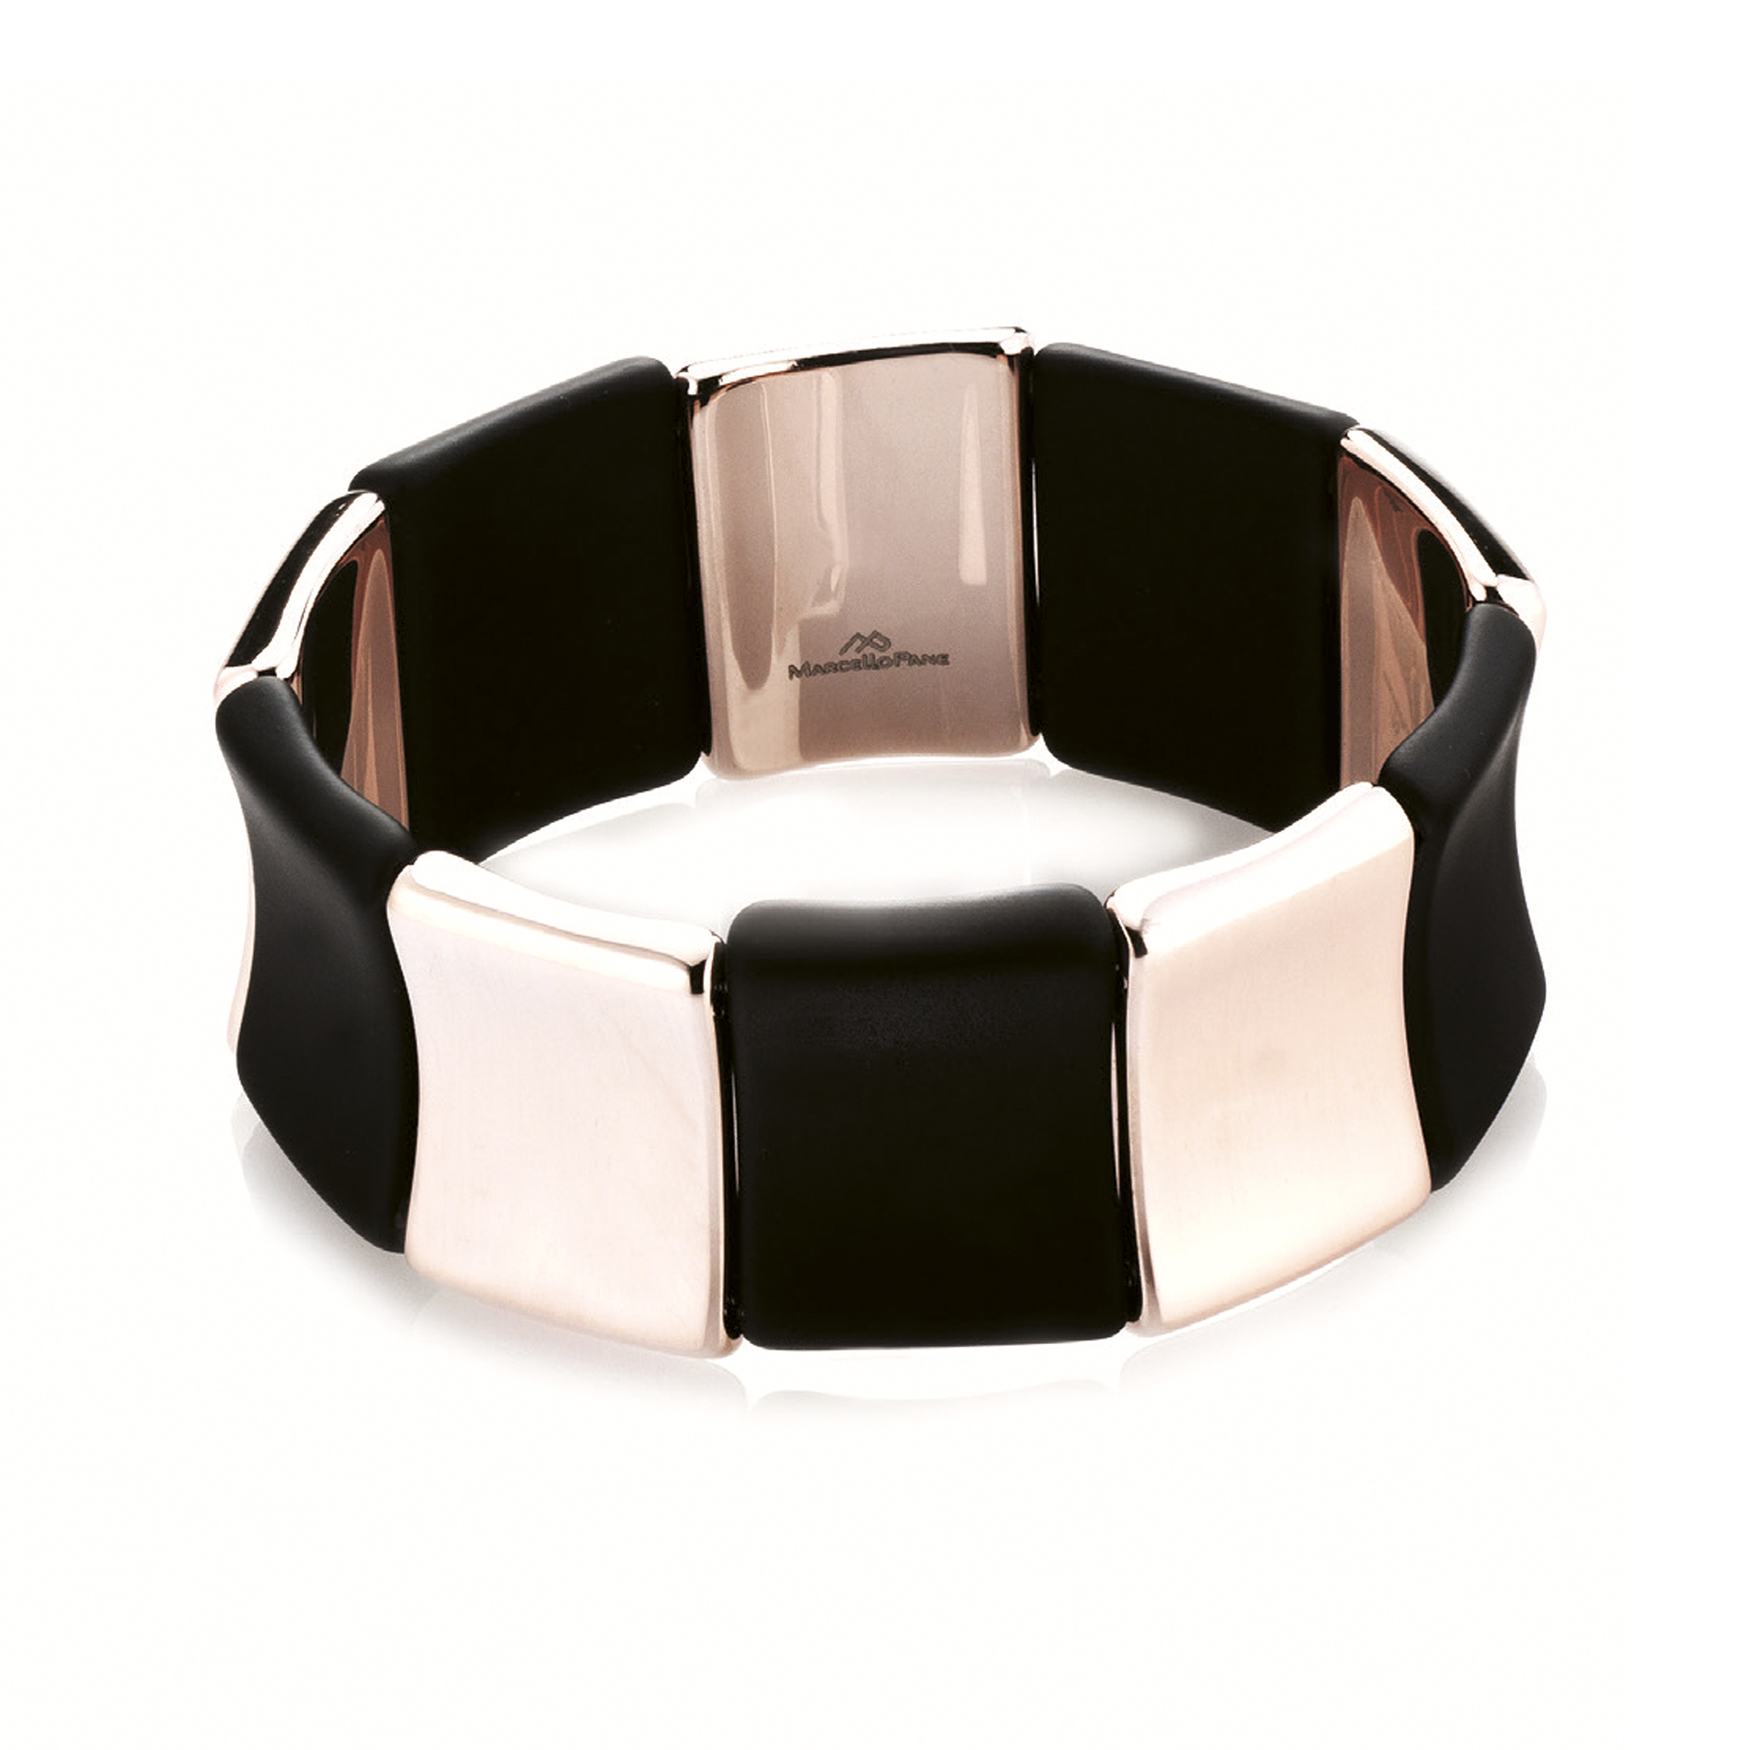 Sensi joyas jewellery Granada silver engagementSILVER BRACELET COVERED WITH  ROSE GOLD AND RUBBER